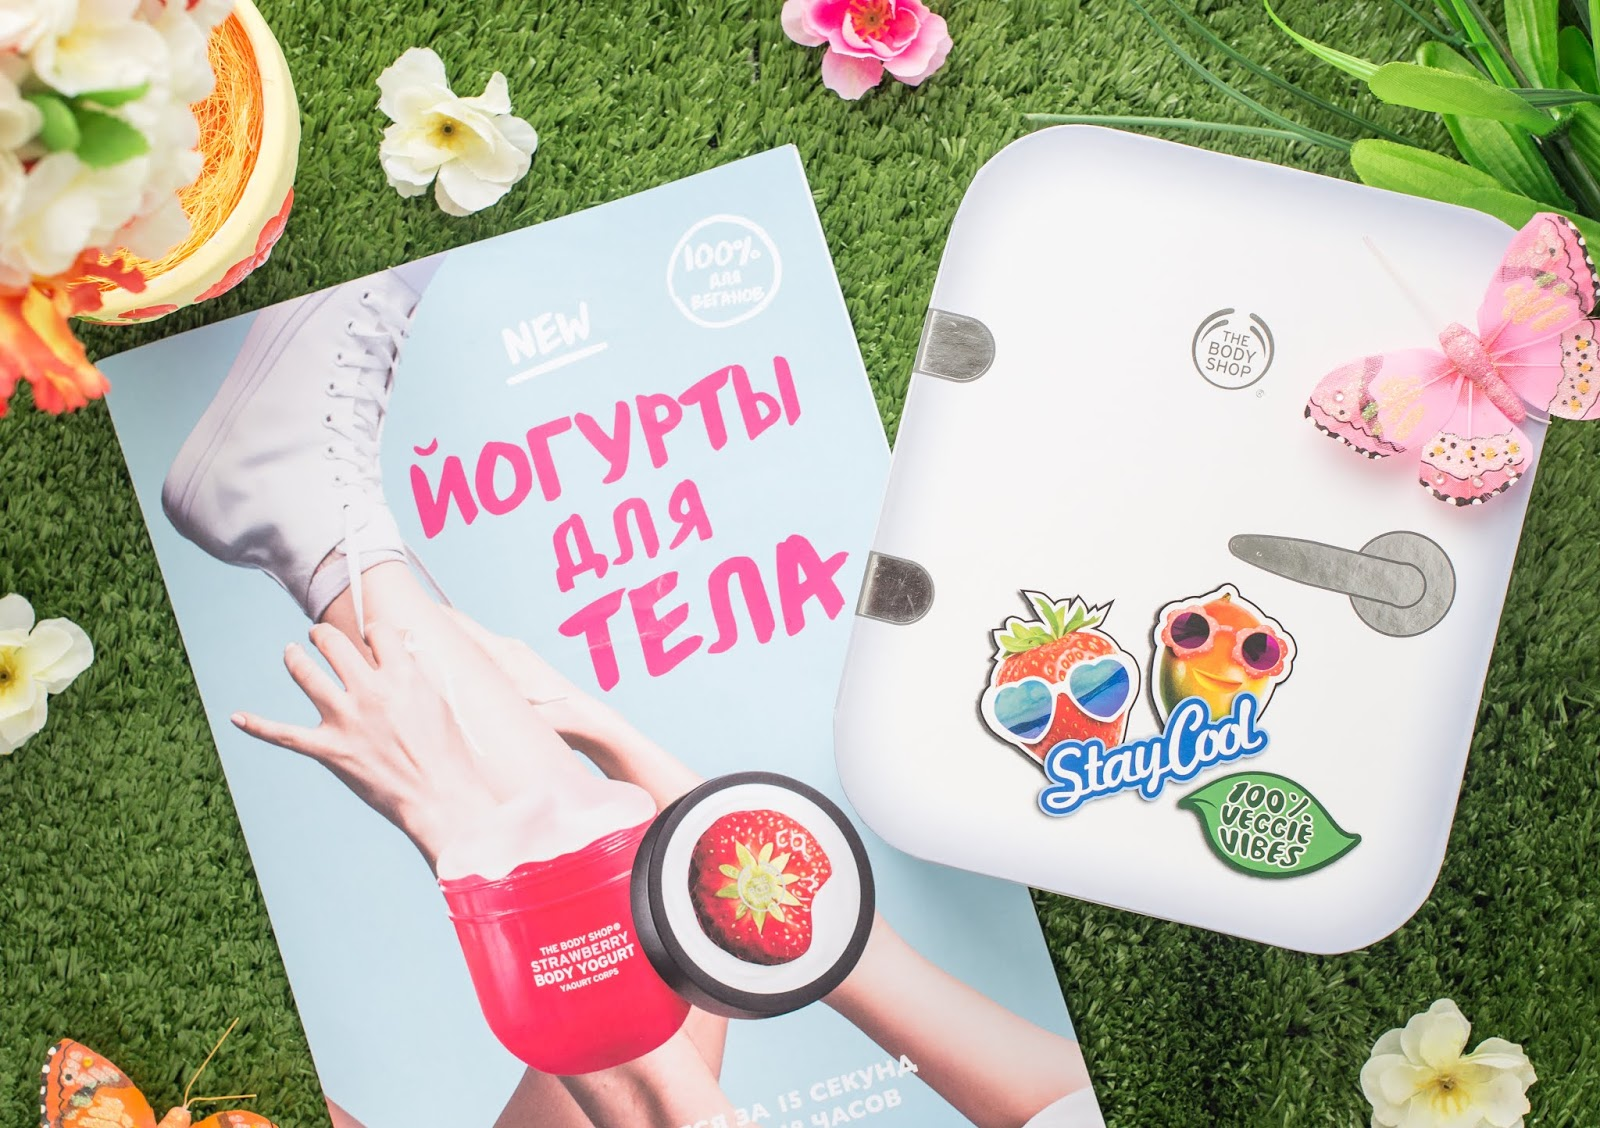 http://www.recklessdiary.ru/2018/07/Body-yogurt-Jogurty-dlya-tela-ot-The-Body-Shop-bodishop-otzyvy.html